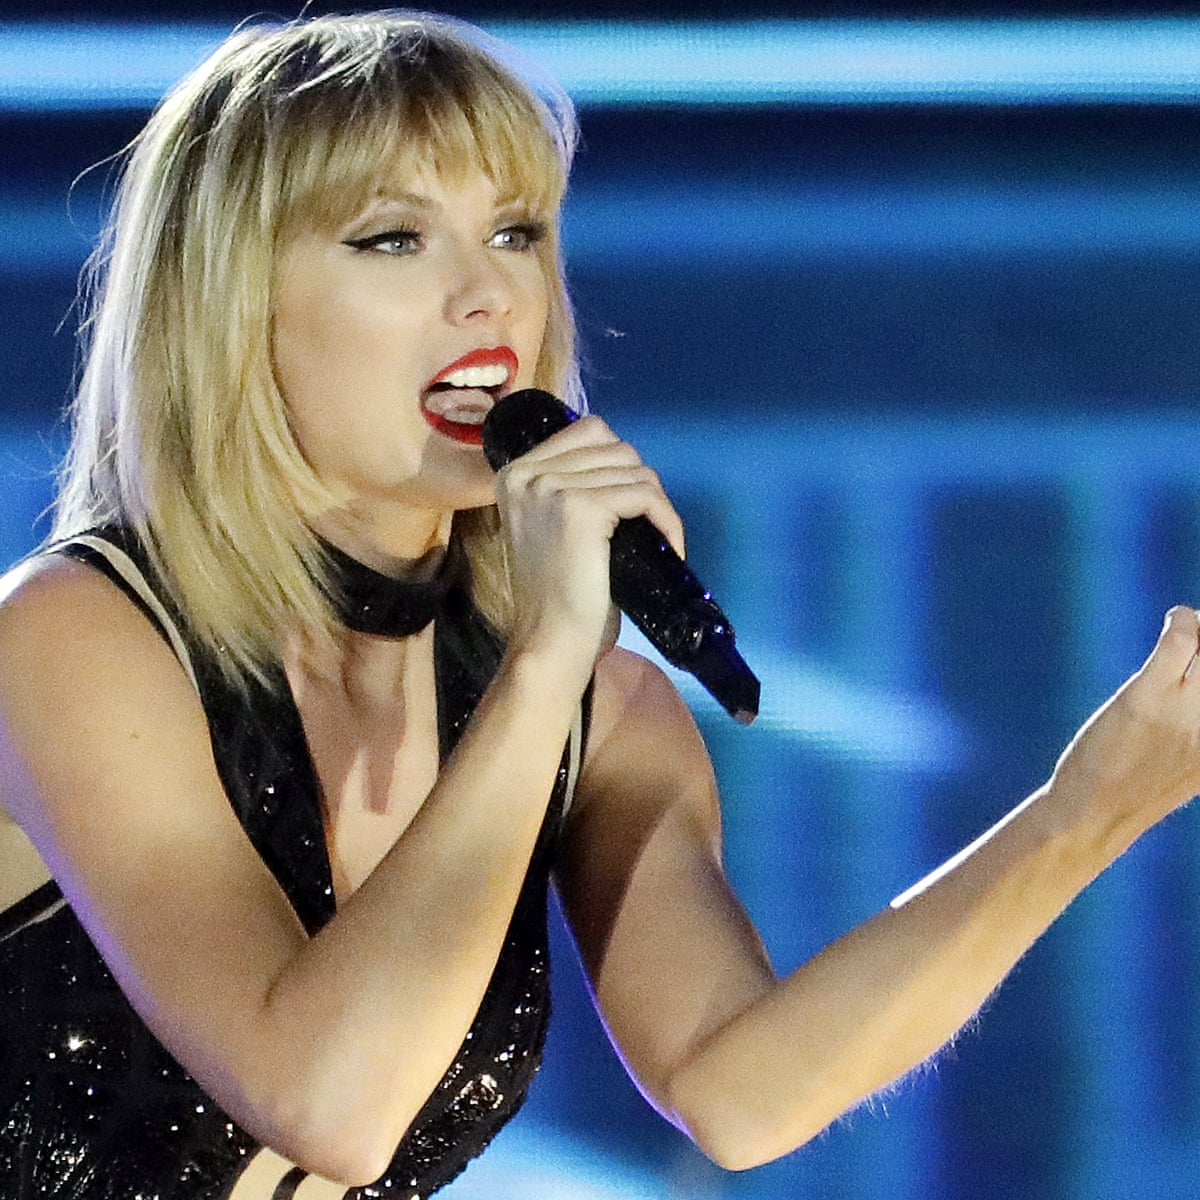 Shaken It Off Taylor Swift Ends Spotify Spat Taylor Swift The Guardian